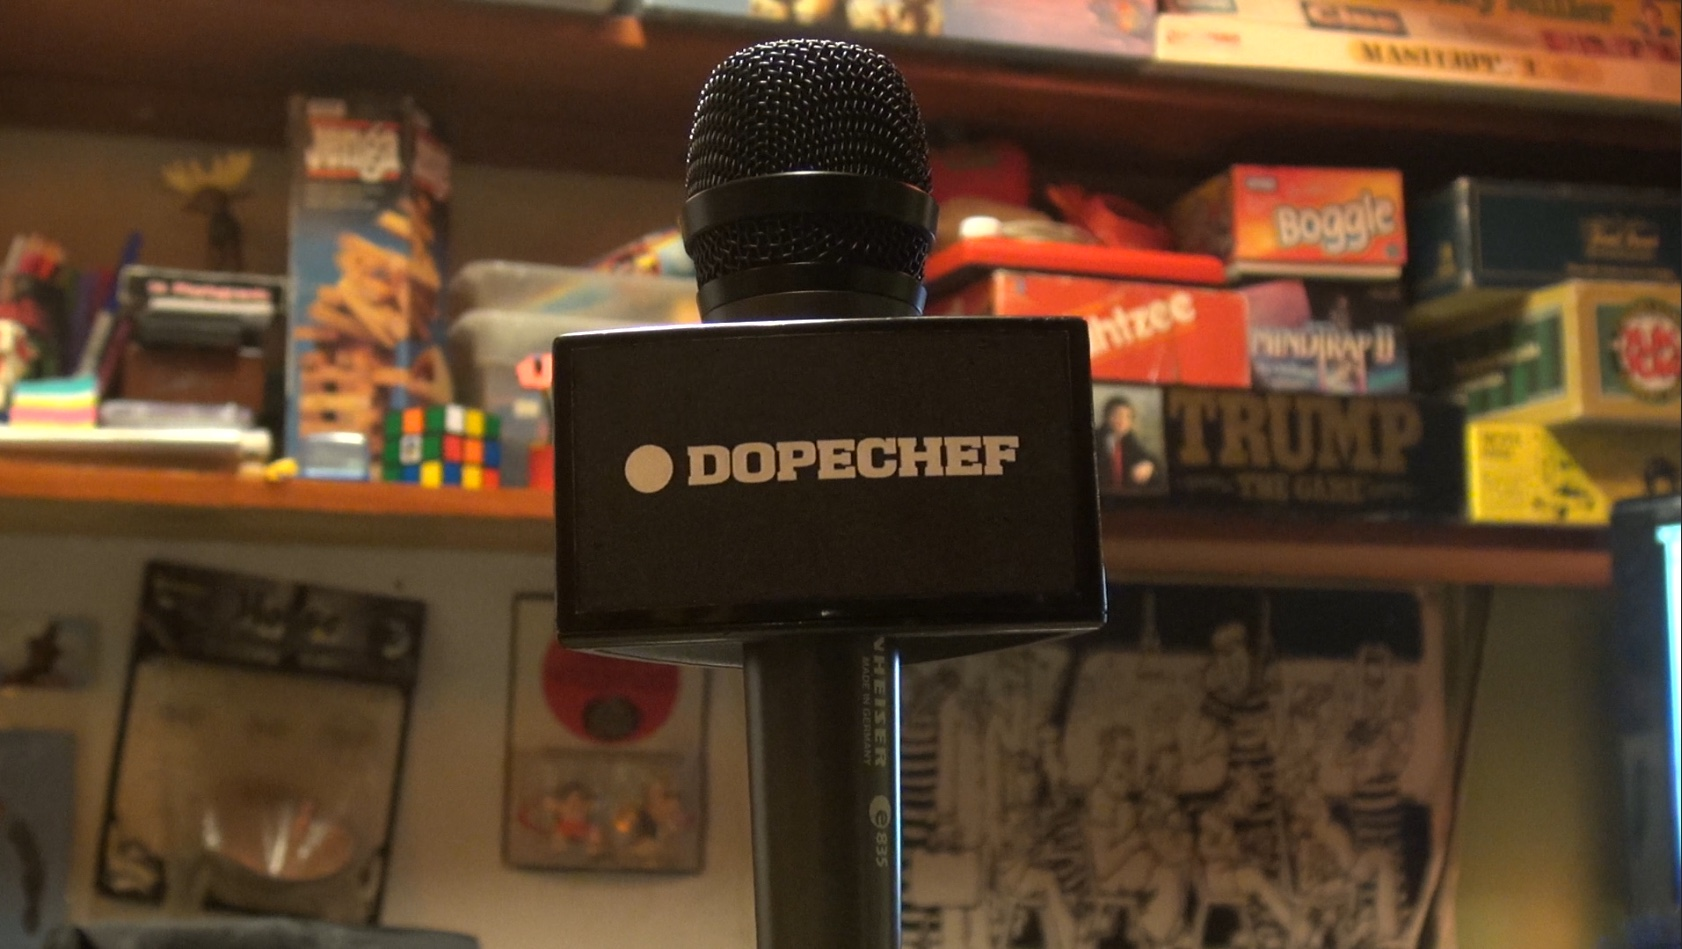 Dopechef media at the underground